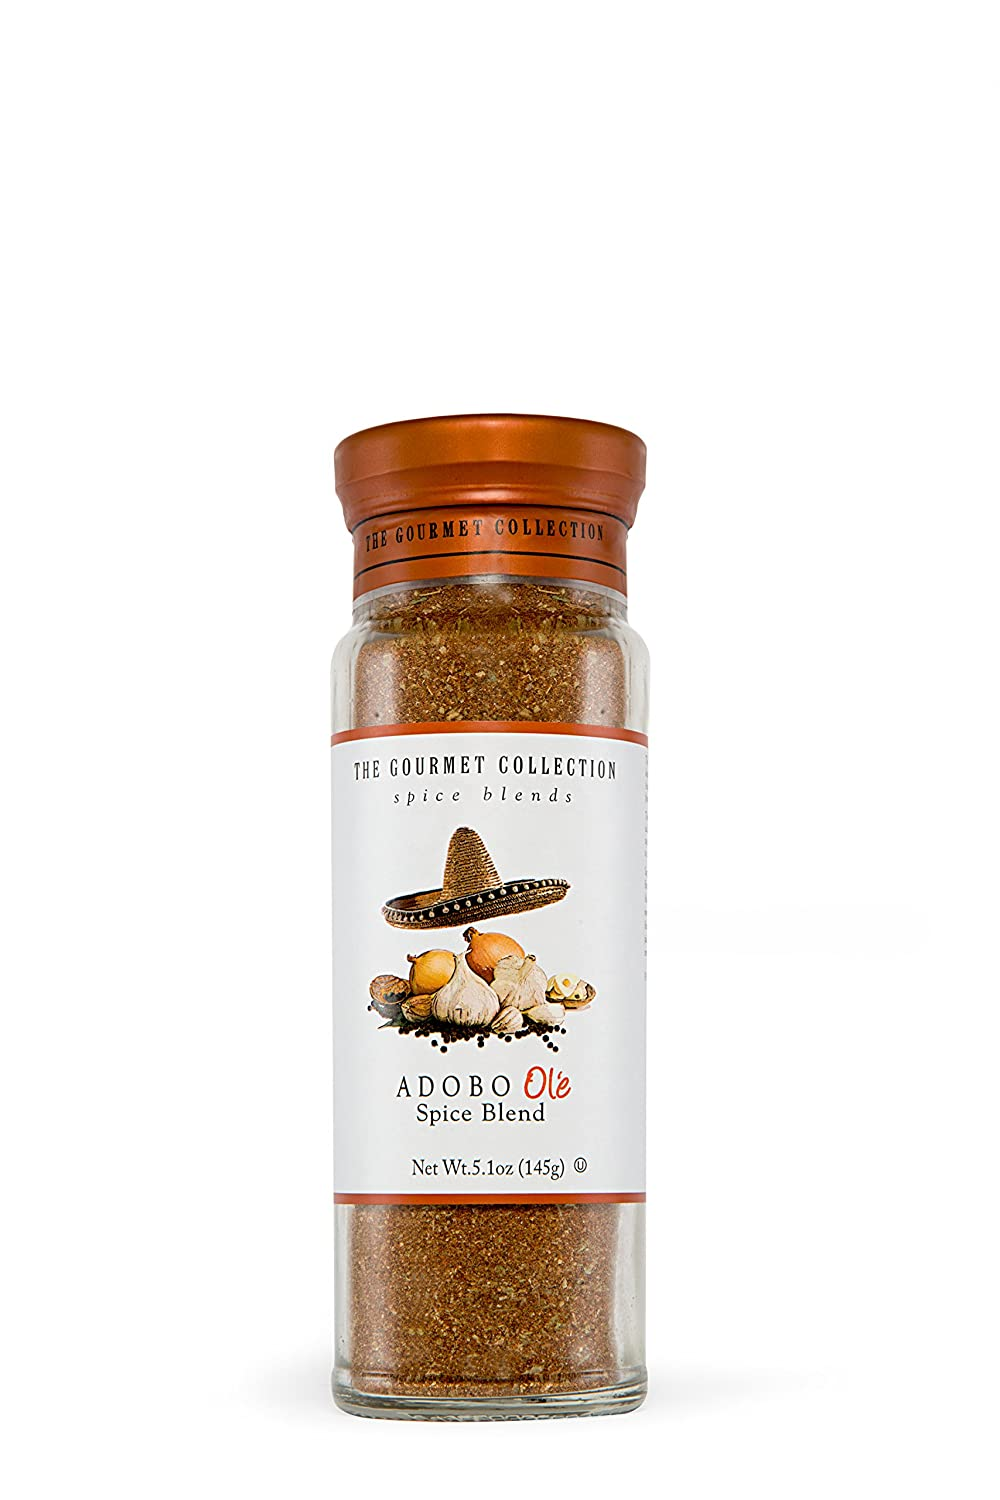 The Gourmet Collection Seasoning & Spice Blends Adobo Ole Spice Blend: Cooking Seasoning for Spanish, Mexican Tacos, Rice, Pork, Chicken. 156 Servings